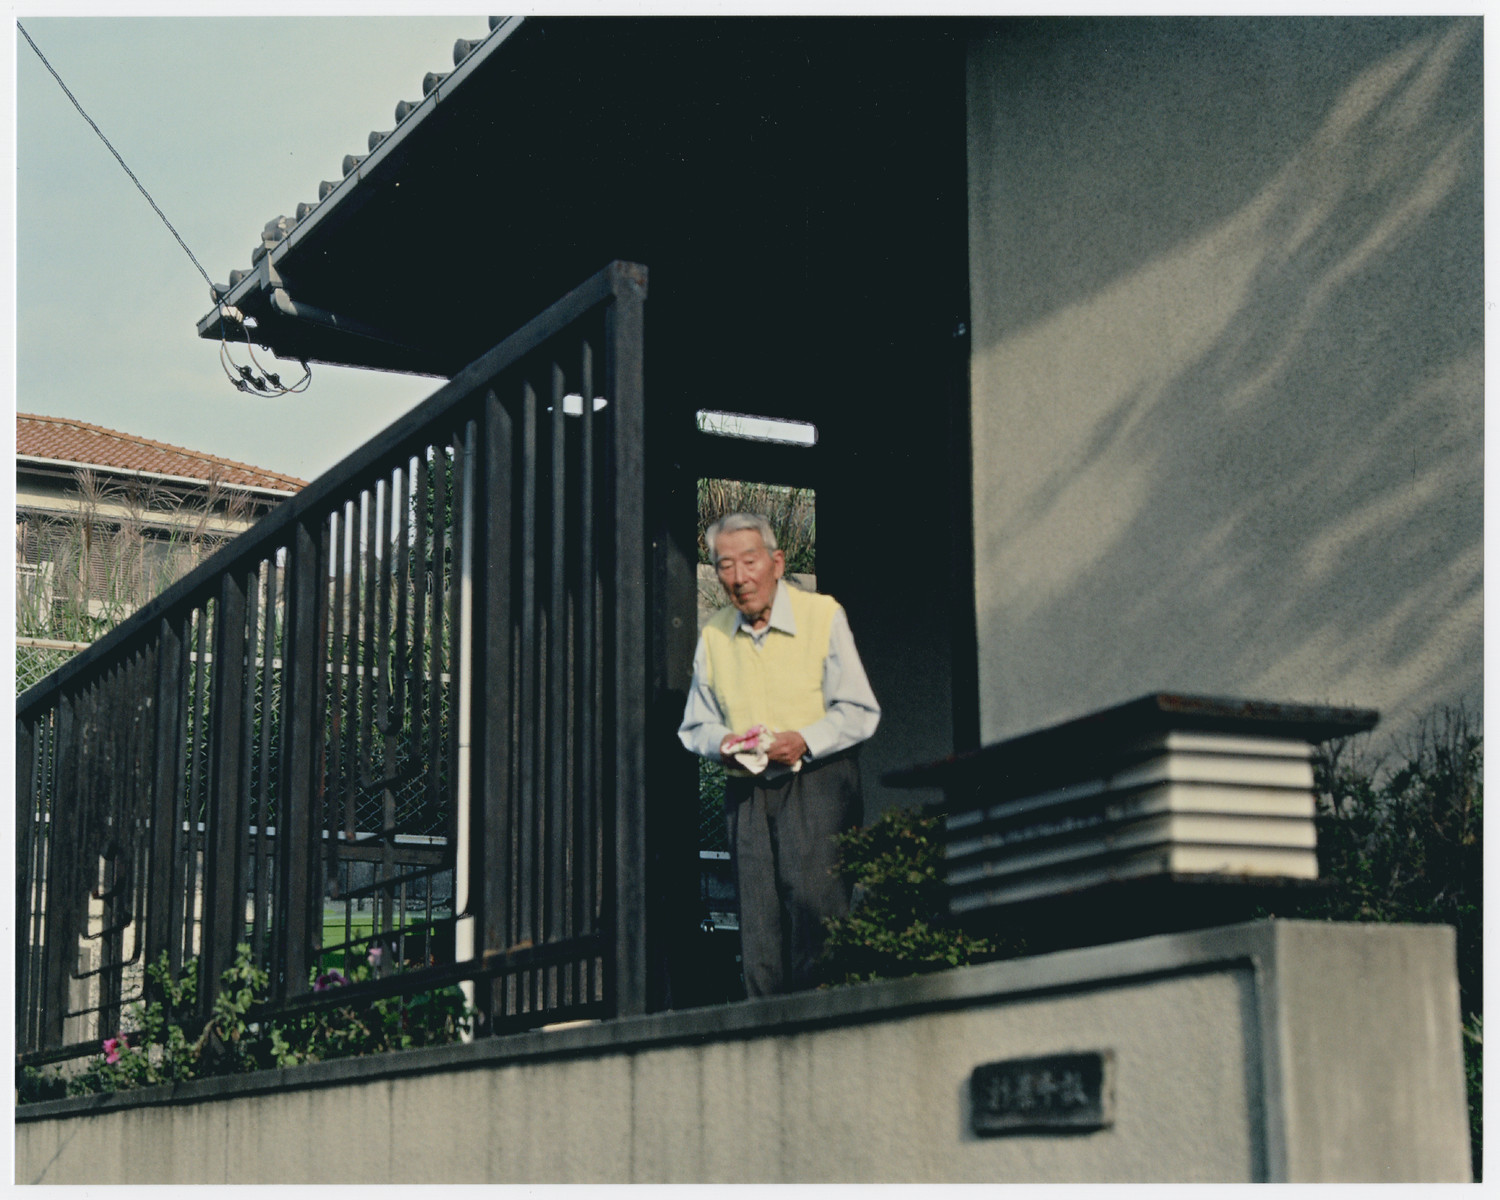 Chiune Sugihara stands on the balcony of his home in Kama Kura, Japan.